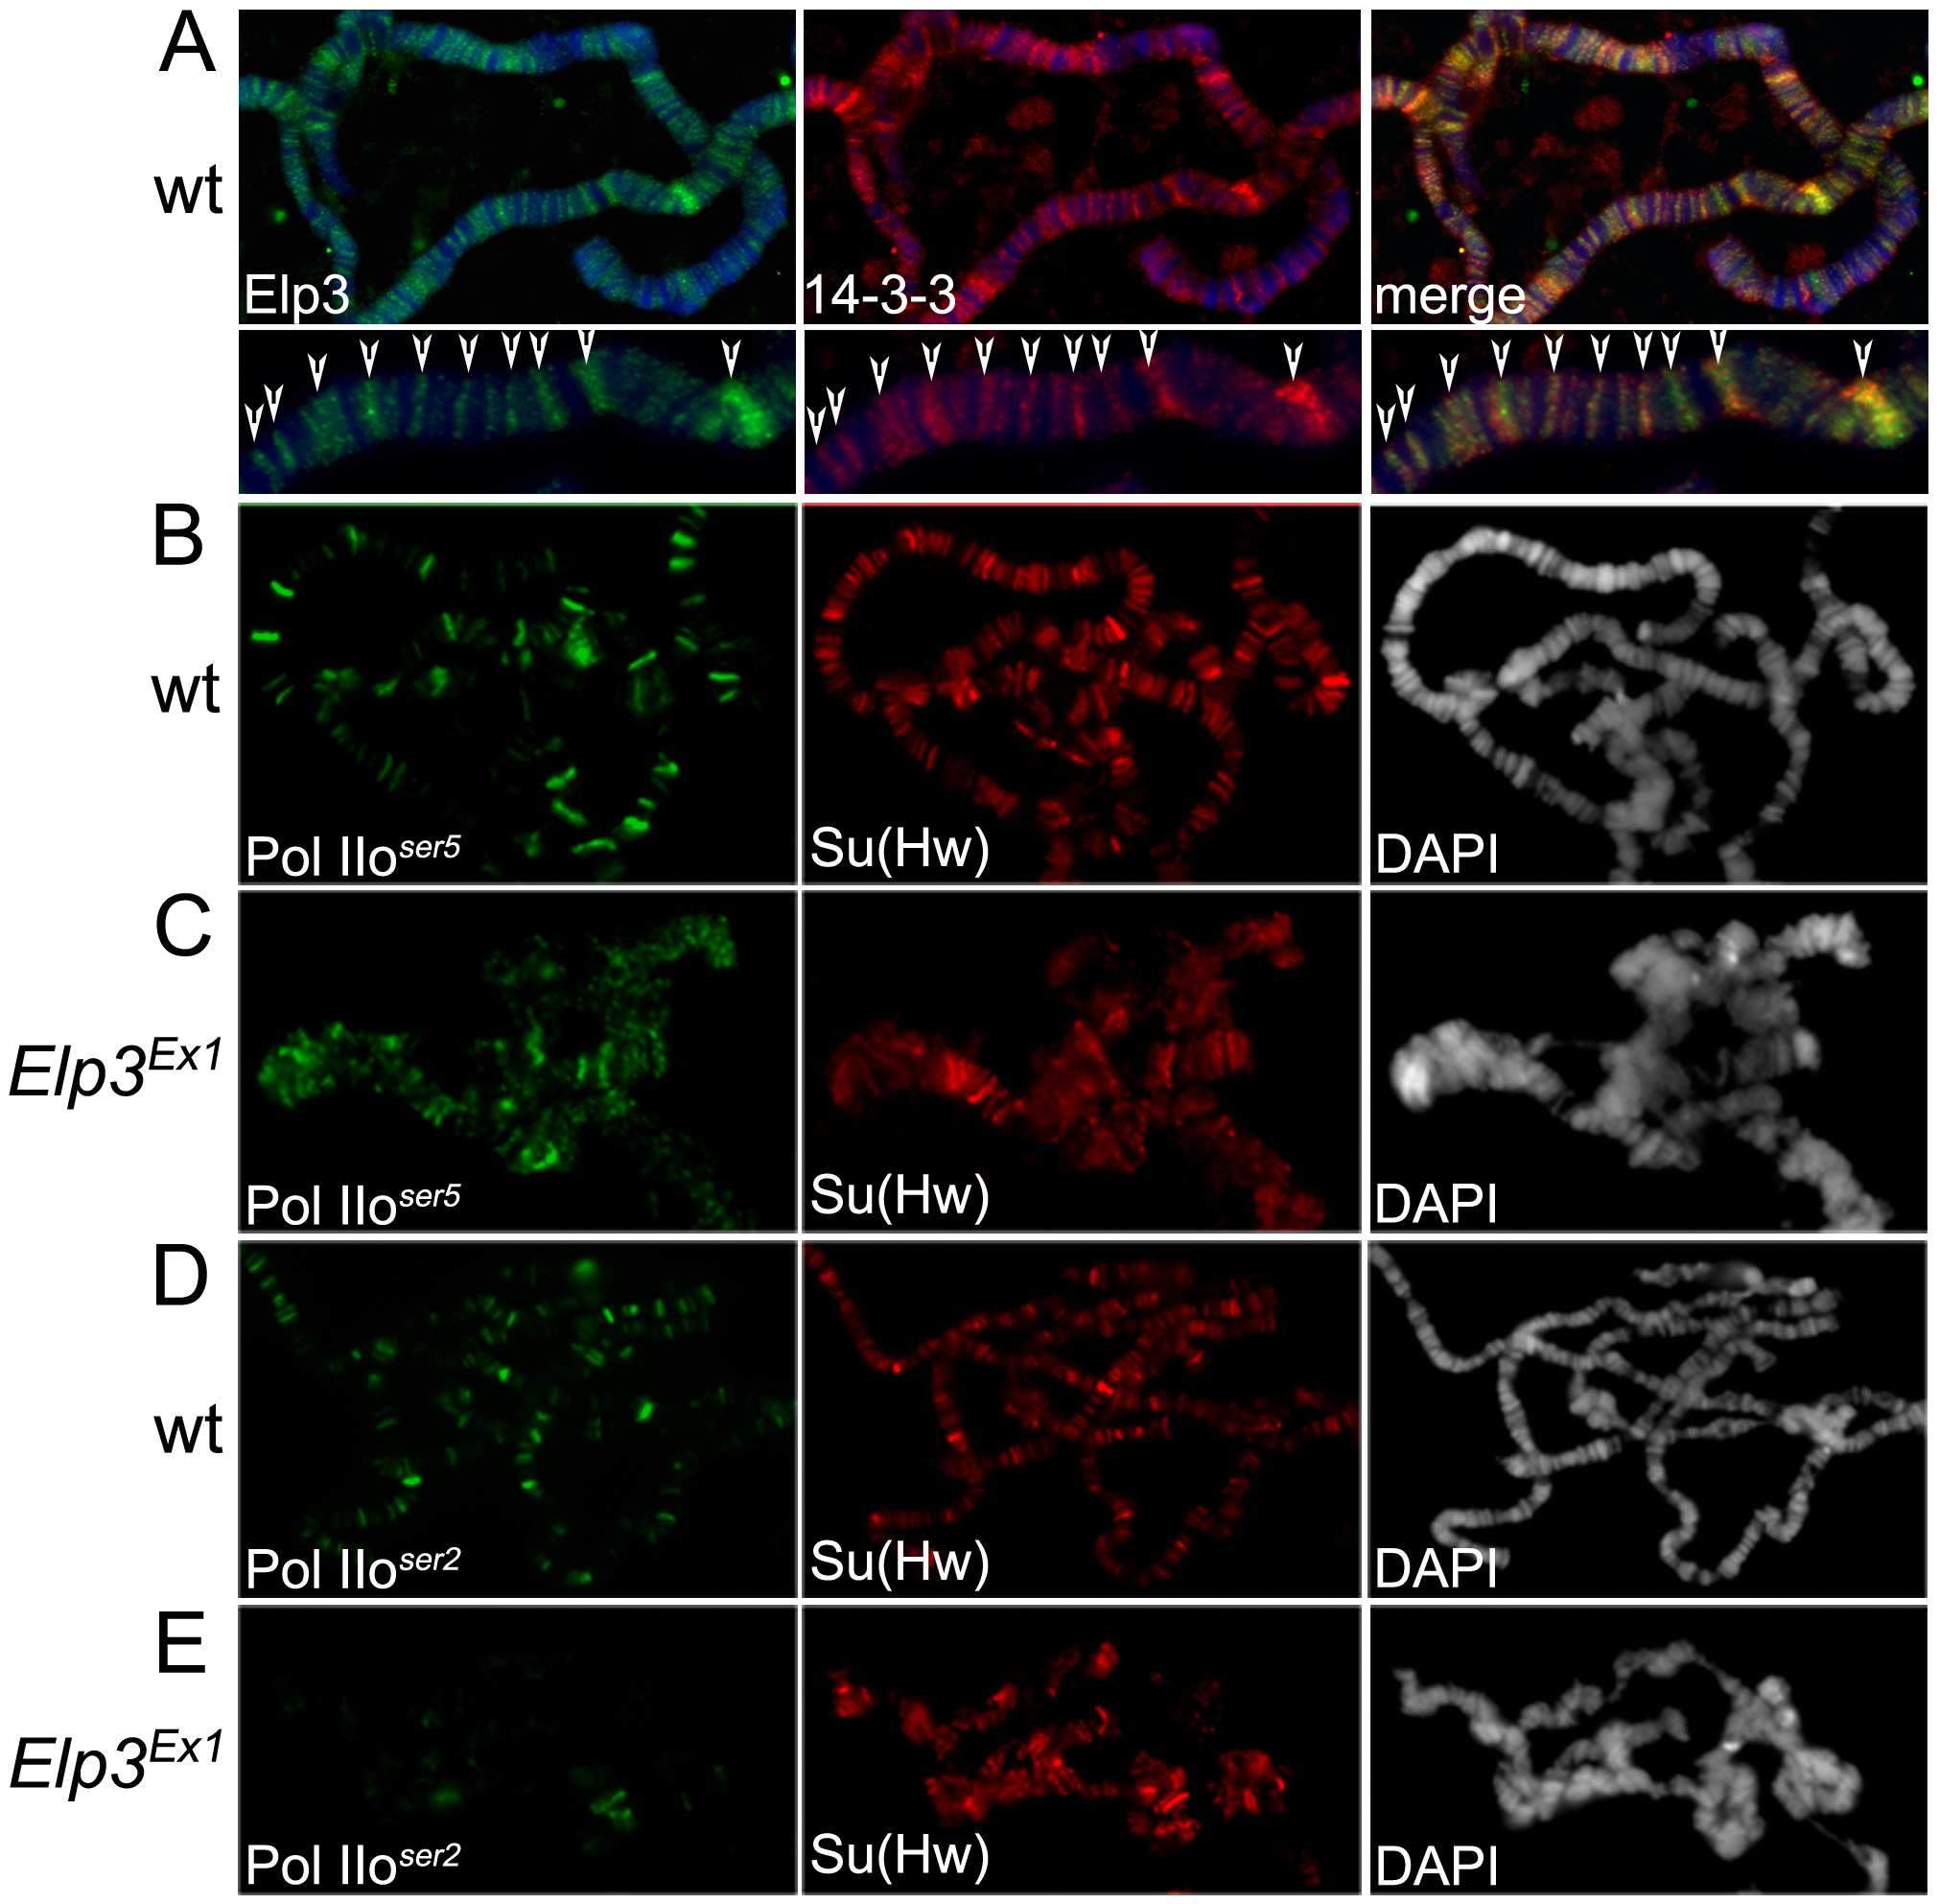 Elp3 co-localizes with 14-3-3 and is required for proper chromatin structure and transcription elongation.